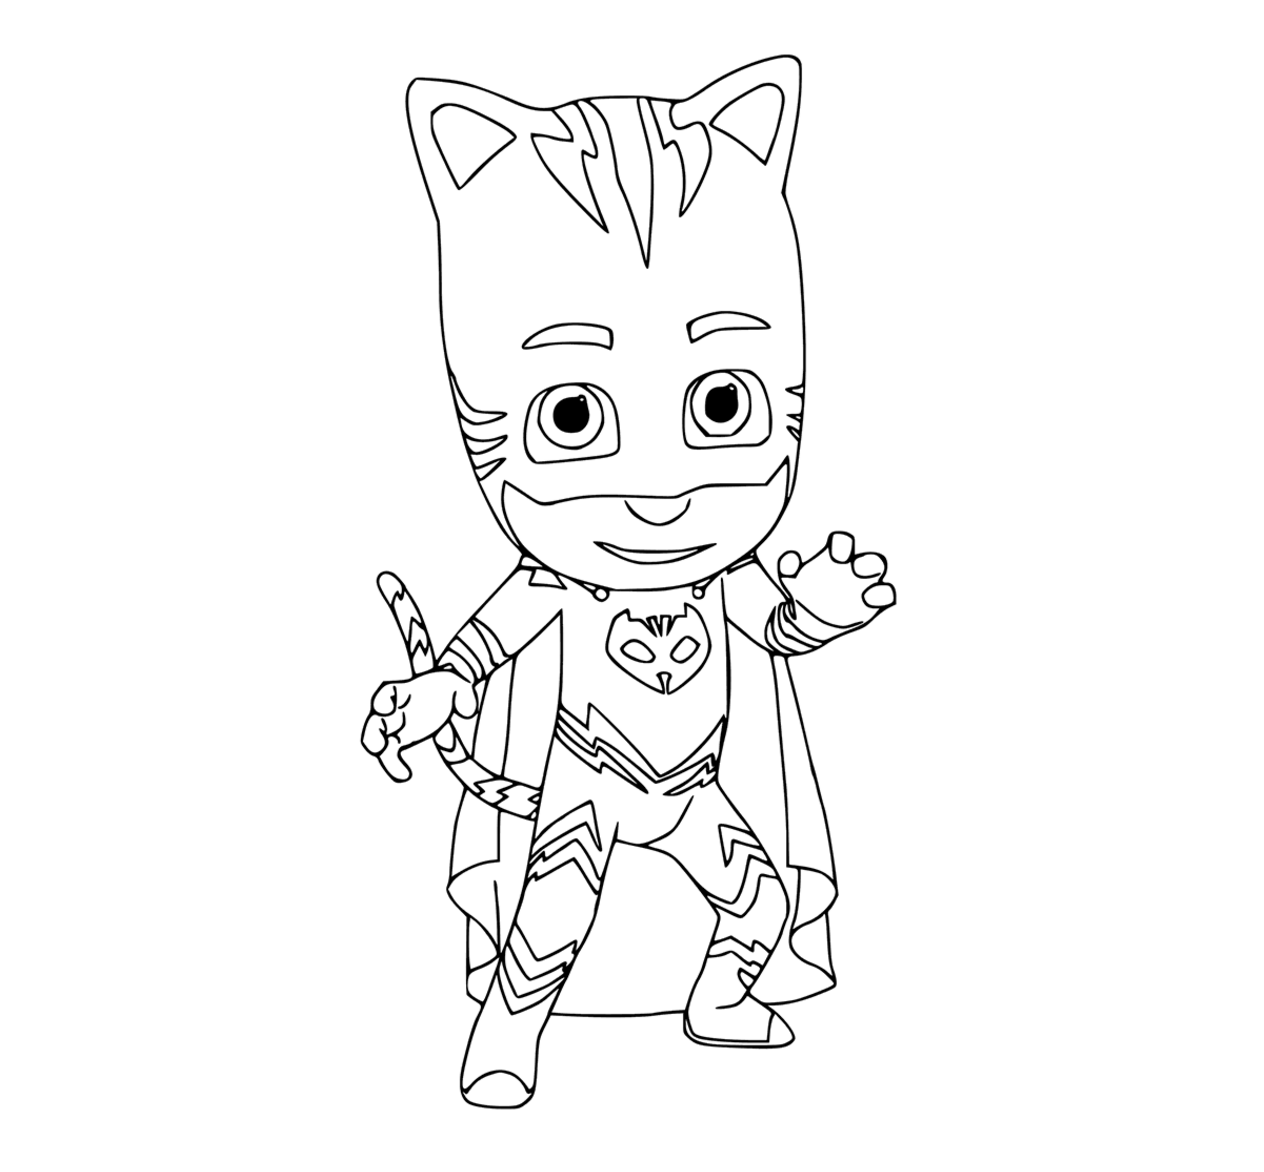 Masks coloring pages to download and print for free